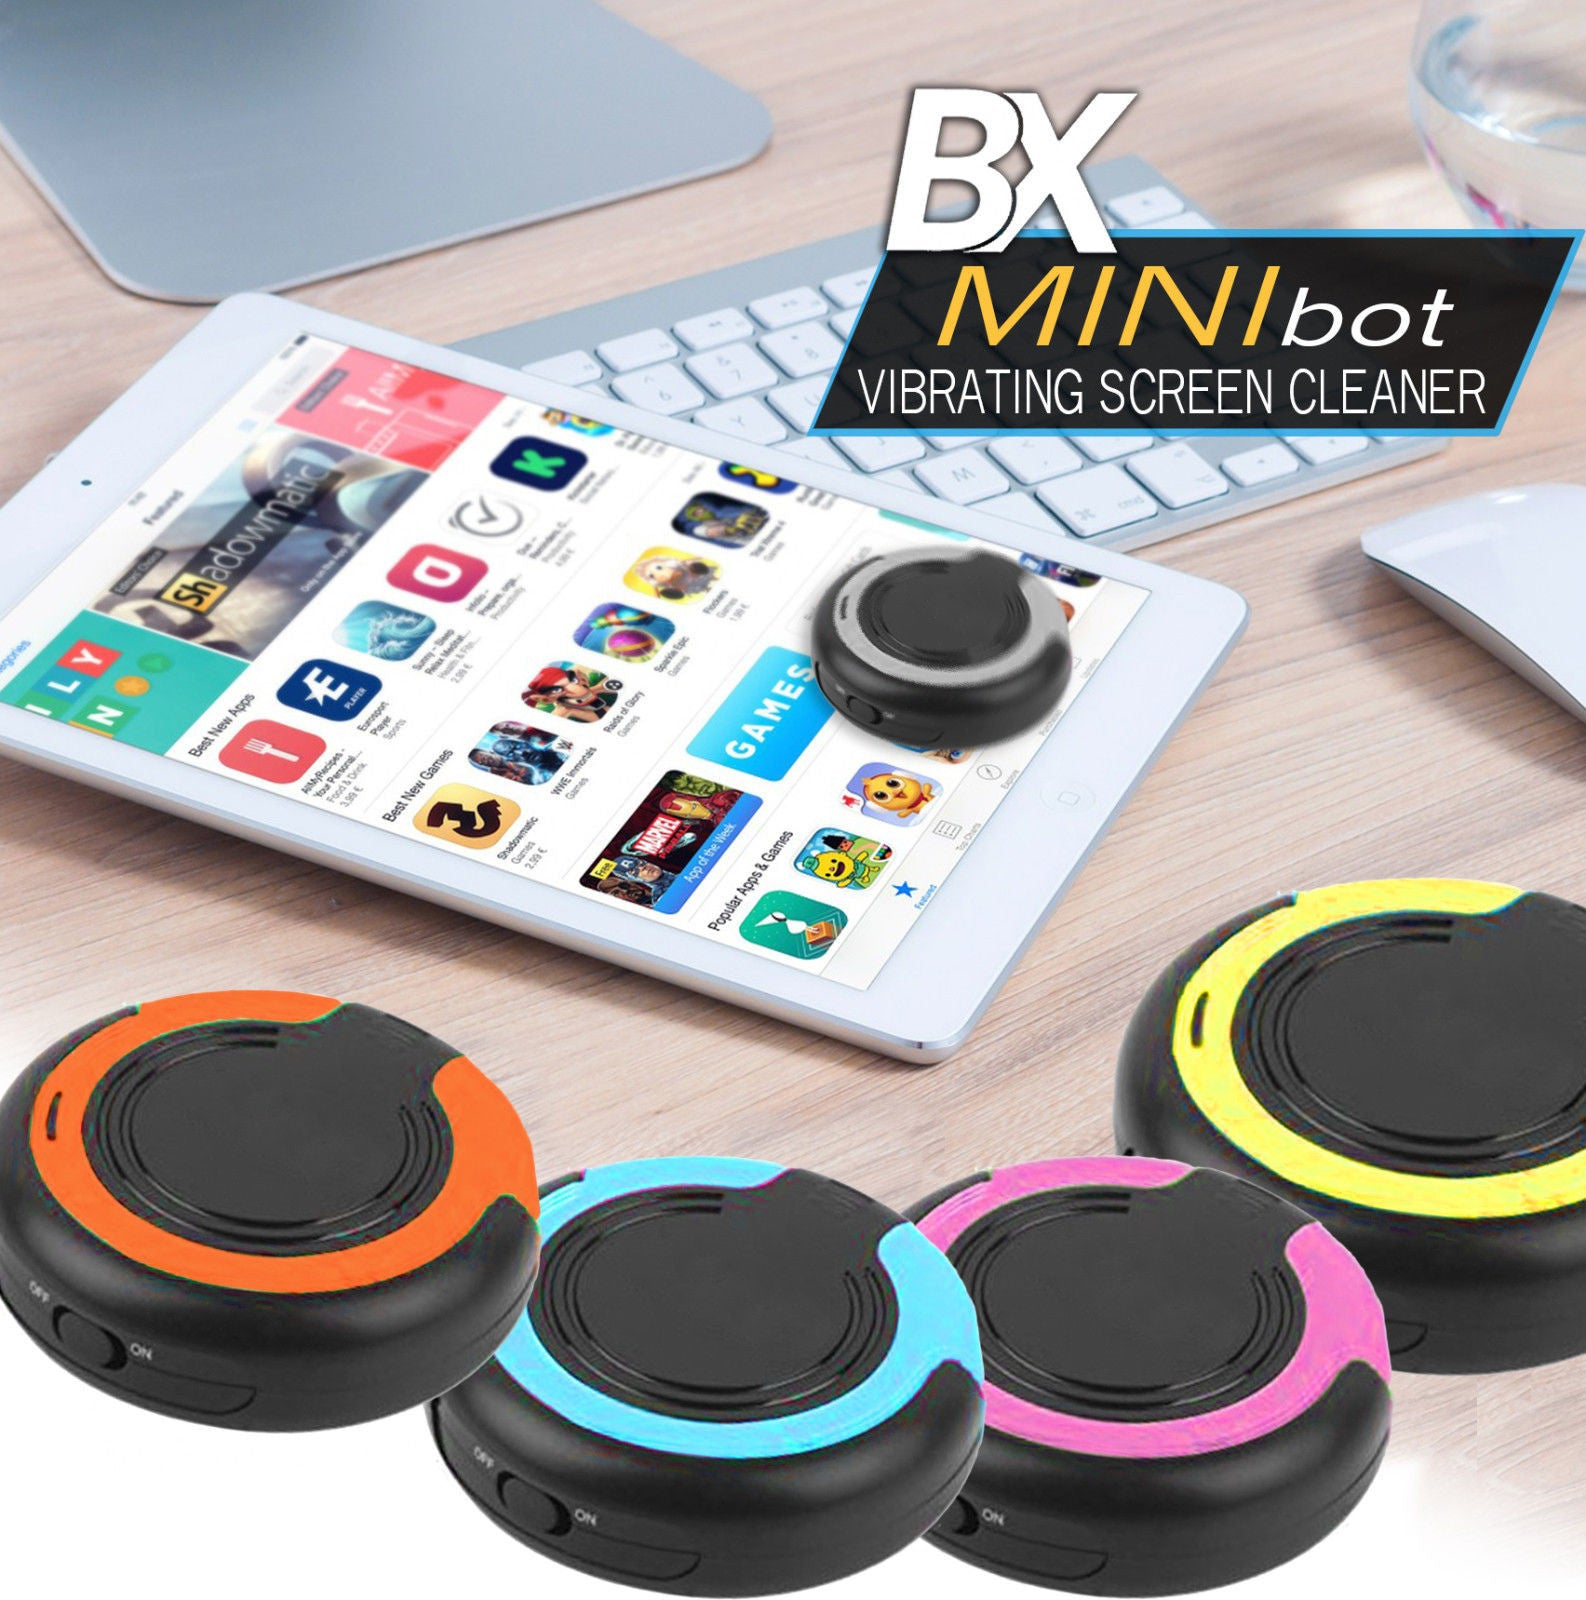 BX Mini Bot Vibrating Screen Cleaner